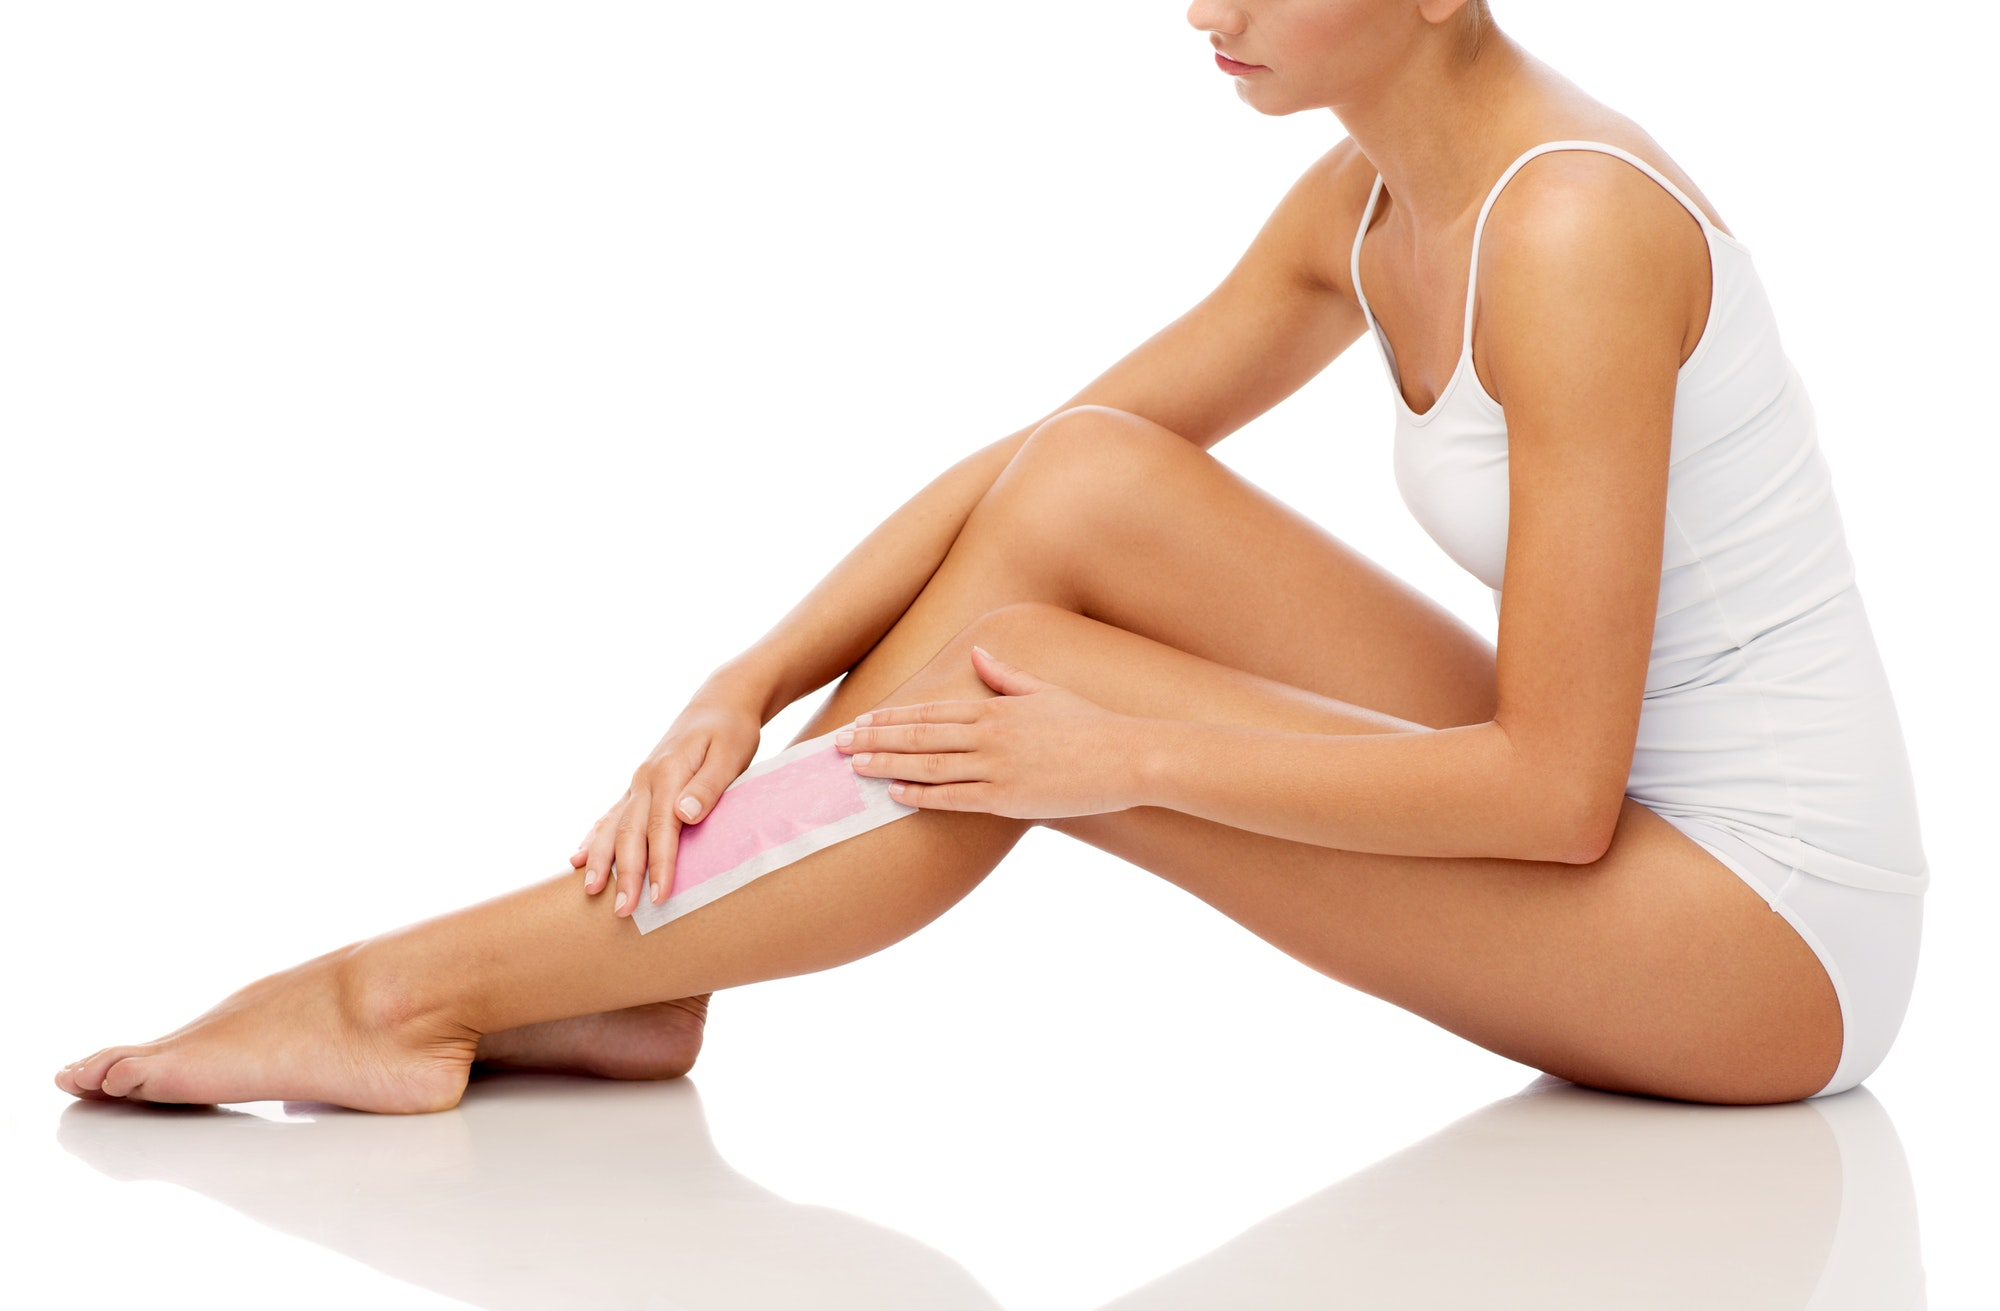 woman removing leg hair with depilatory wax strip